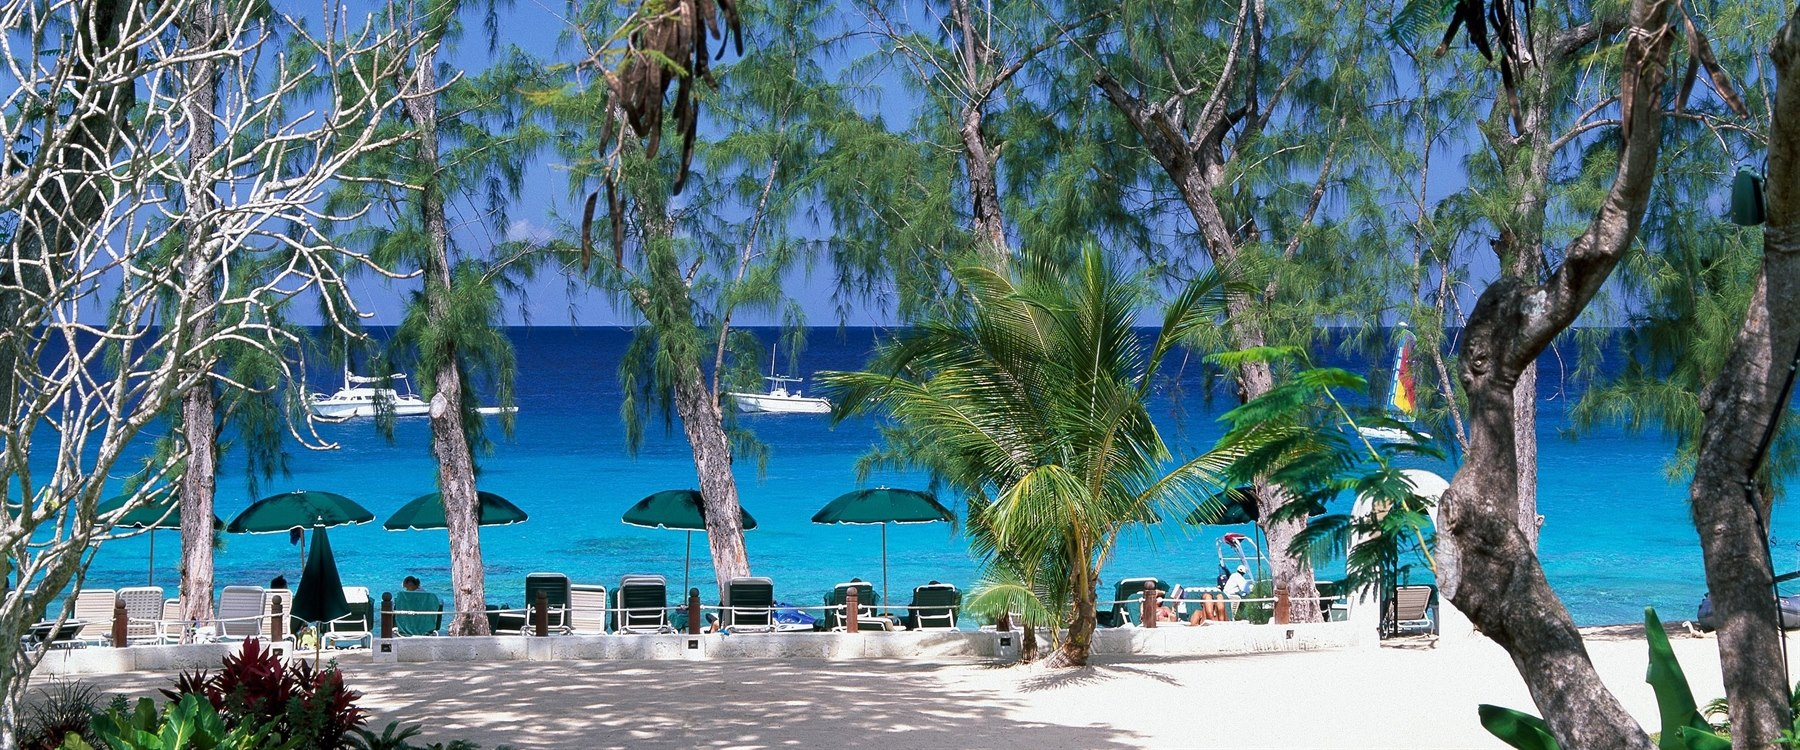 Beach area at coral reef club barbados